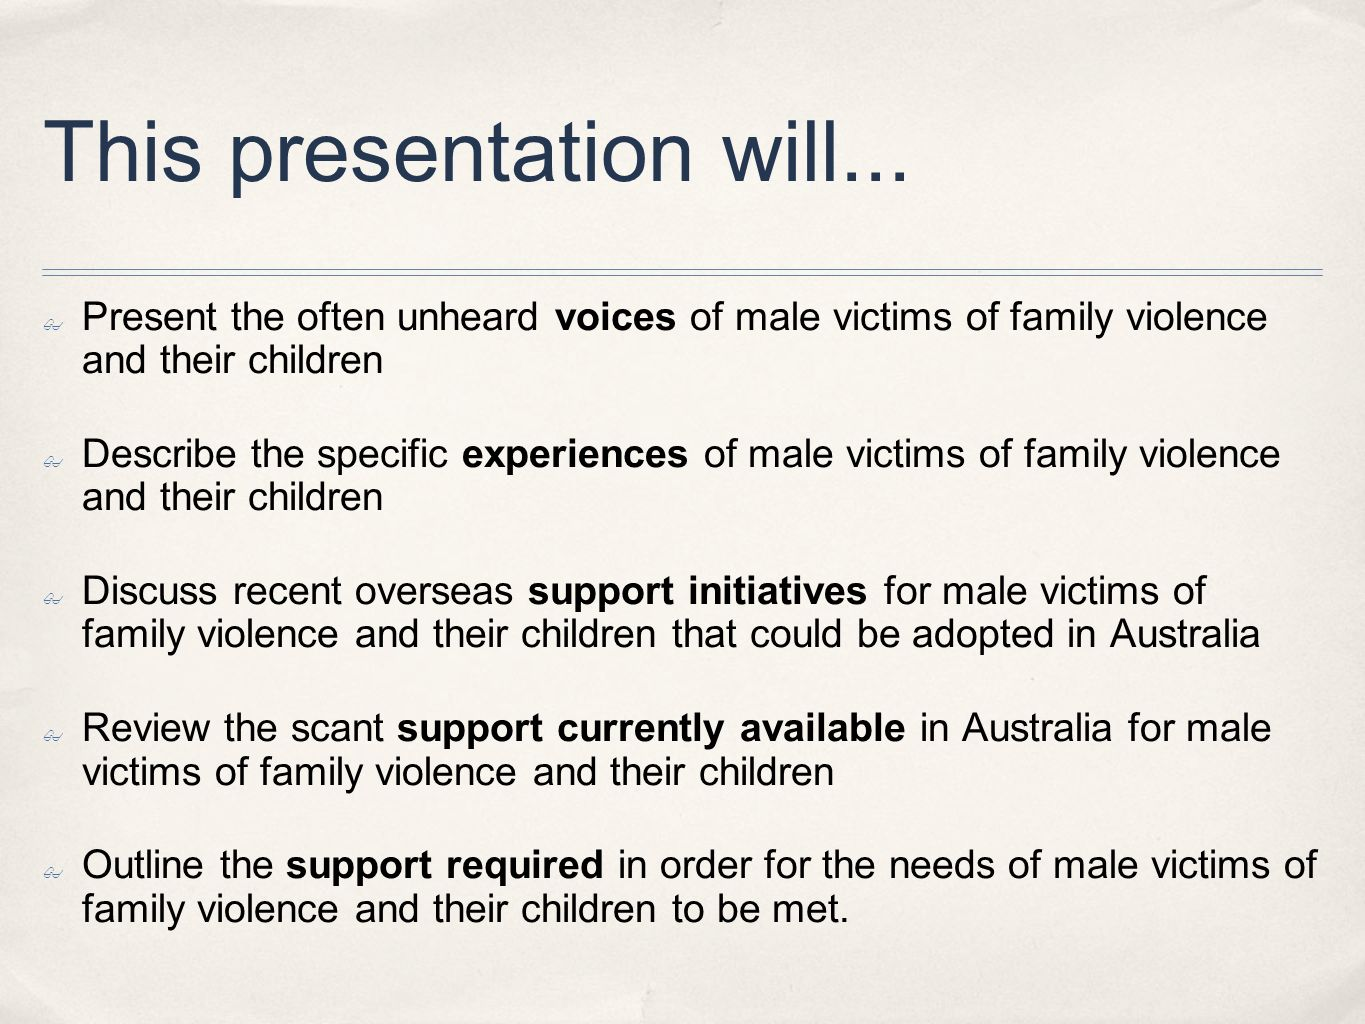 This presentation will... Present the often unheard voices of male victims of family violence and their children Describe the specific experiences of